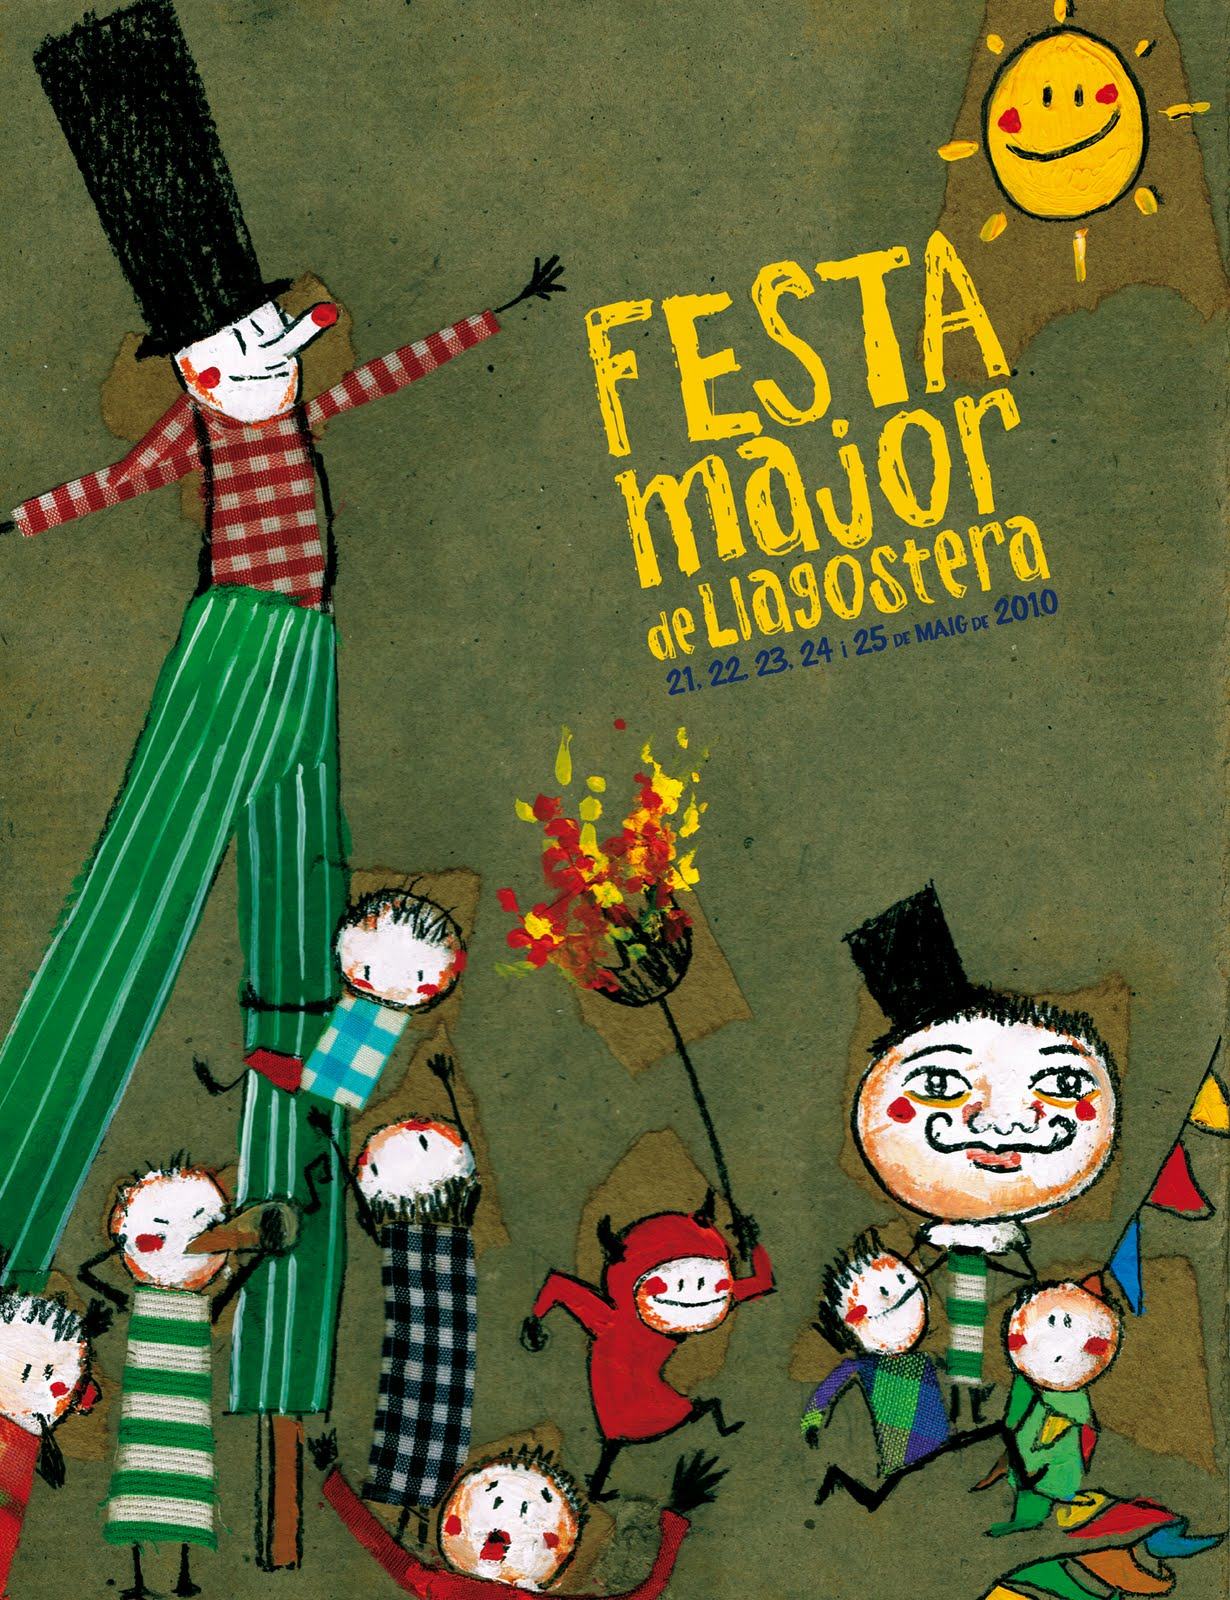 Fiesta mayor de Llagostera 2010